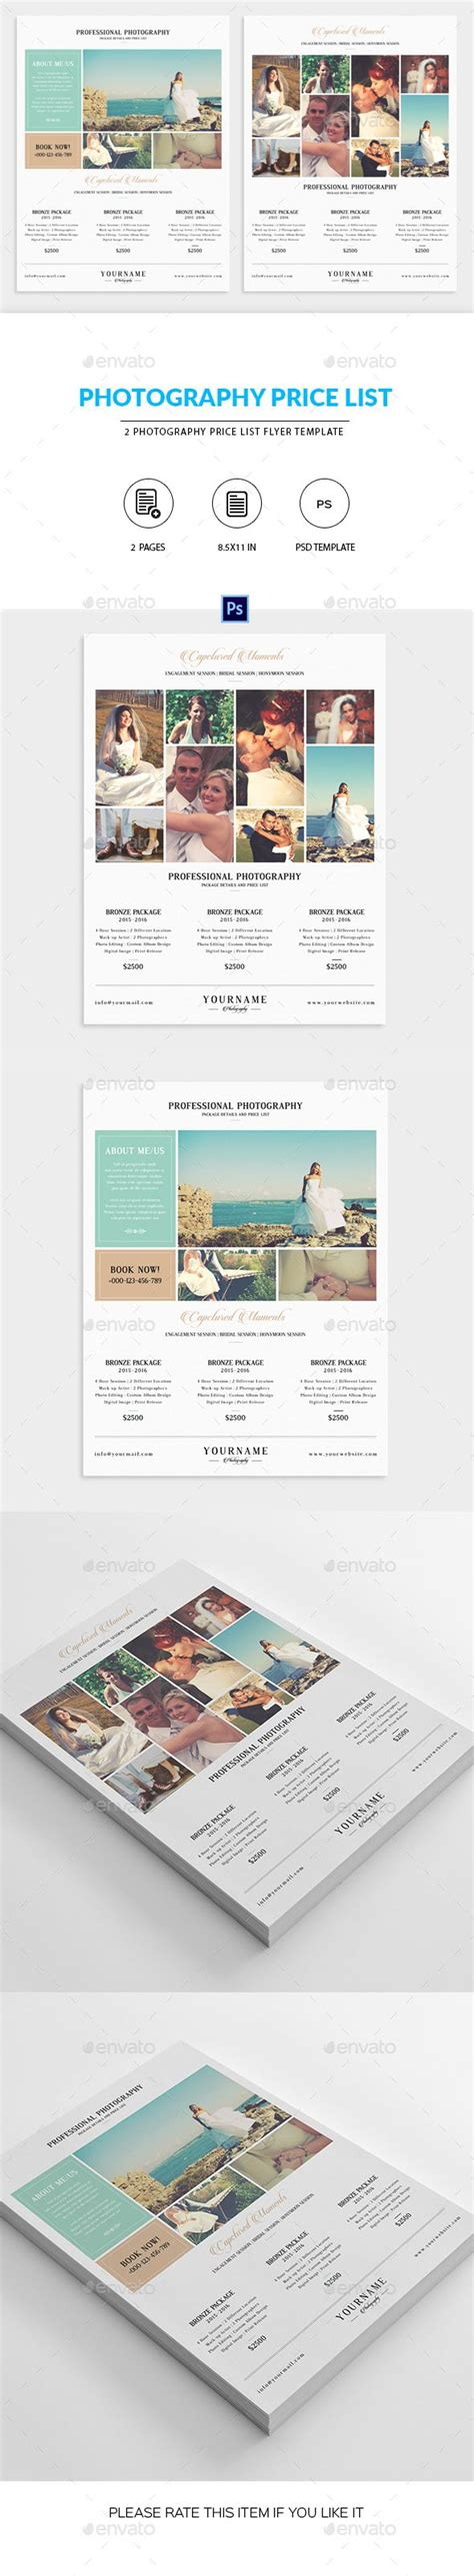 25 Best Ideas About Photography Price List On Pinterest Photography And Videography Canon Videography Price List Template